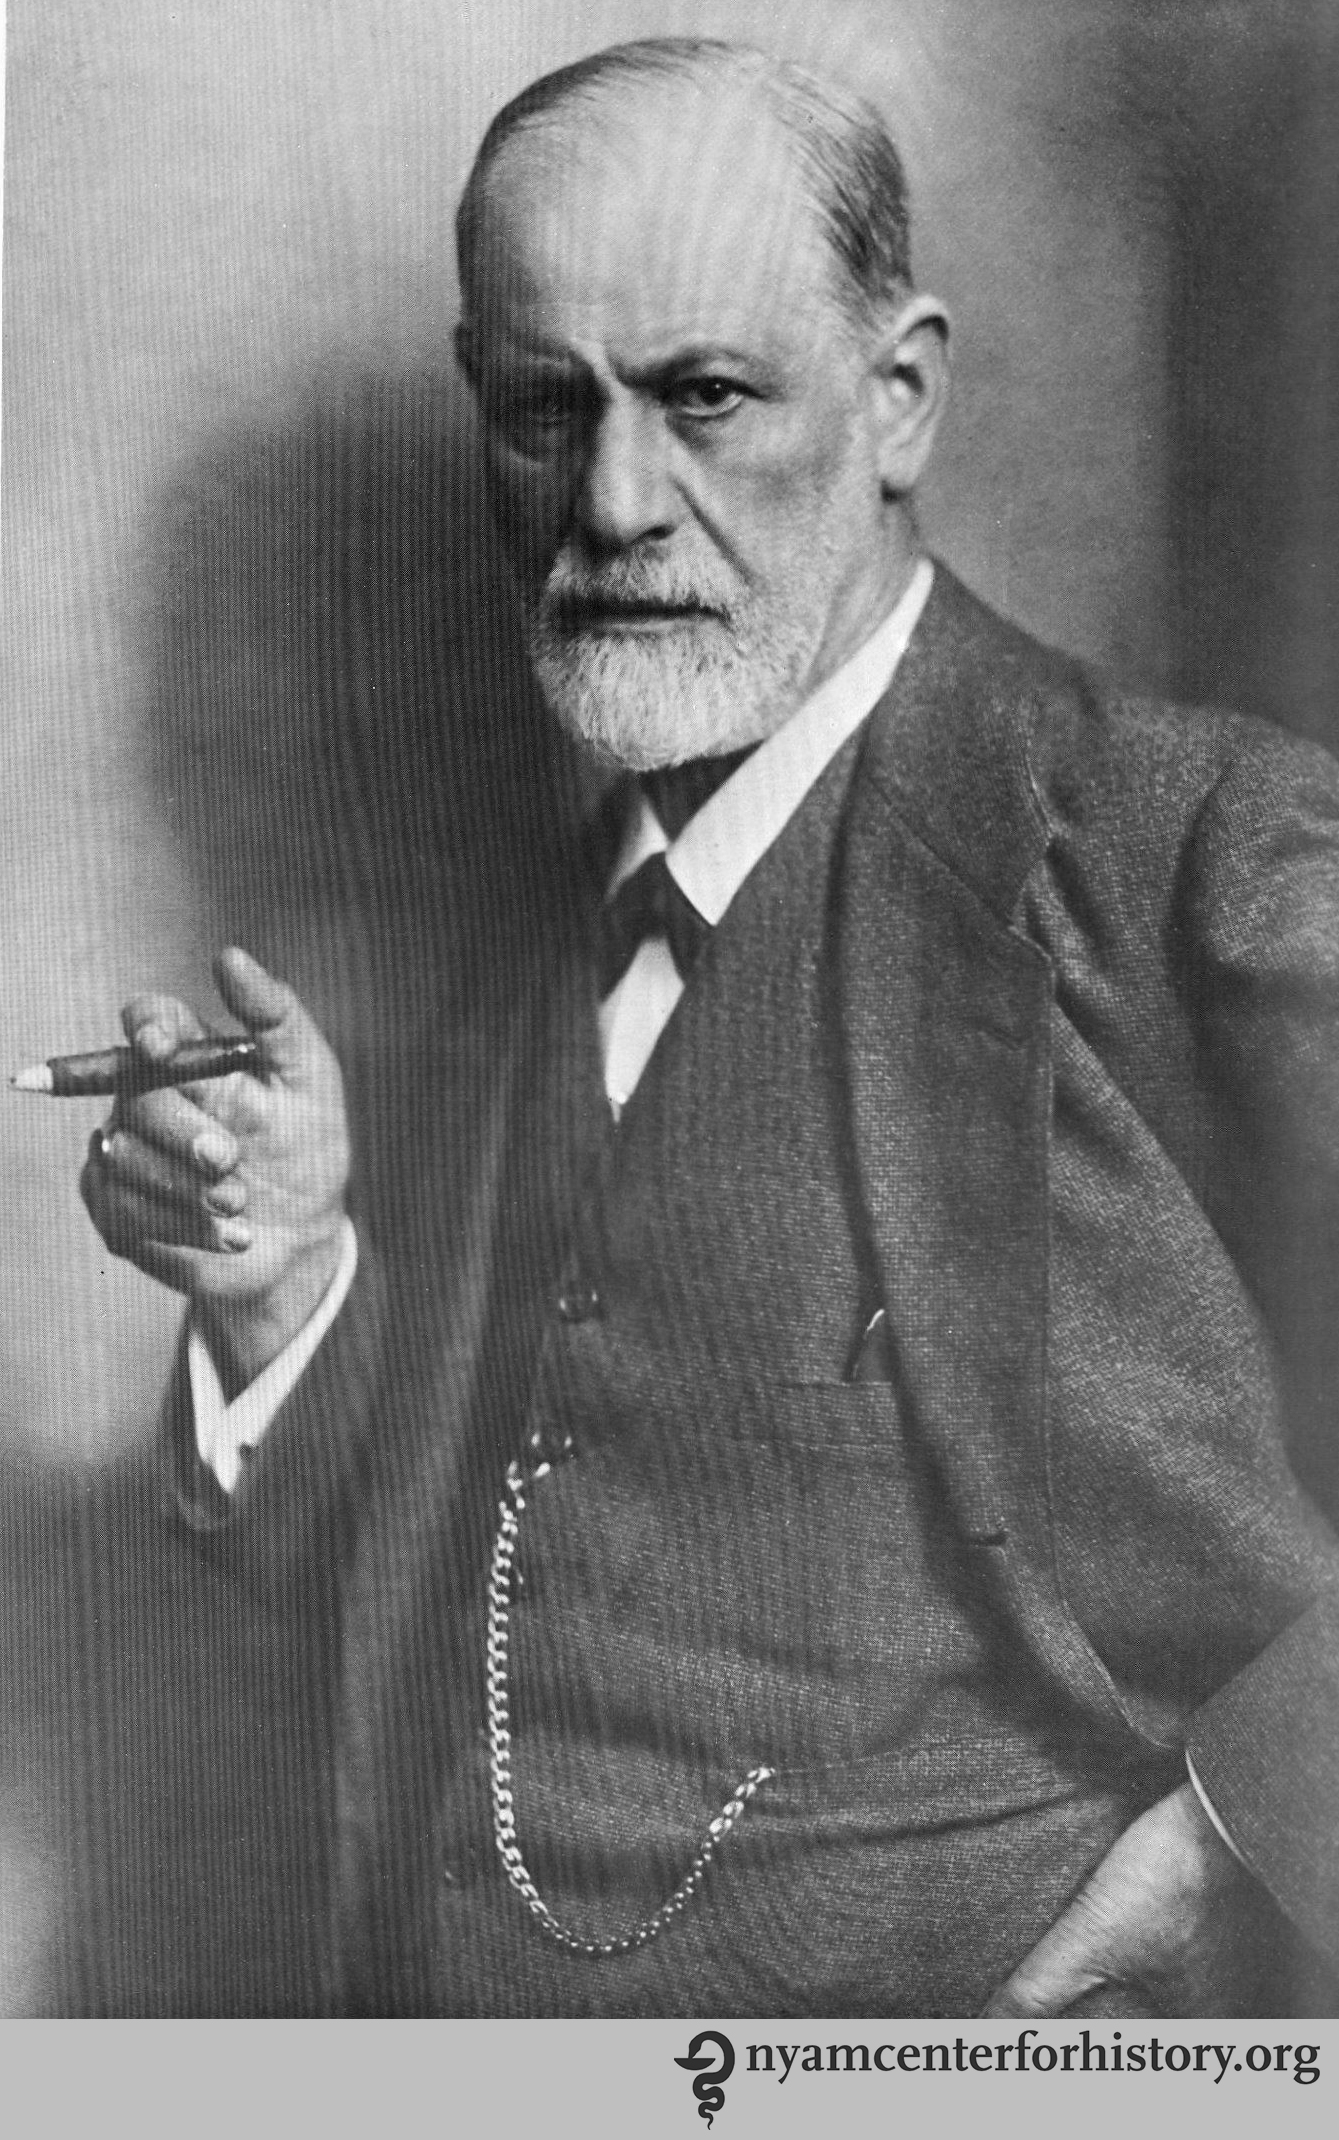 sigmund freud essay archiv sigmund freud museum essay freud essay  sigmund freud books health and history freud circa 1921 in ernst l freud lucie freud and